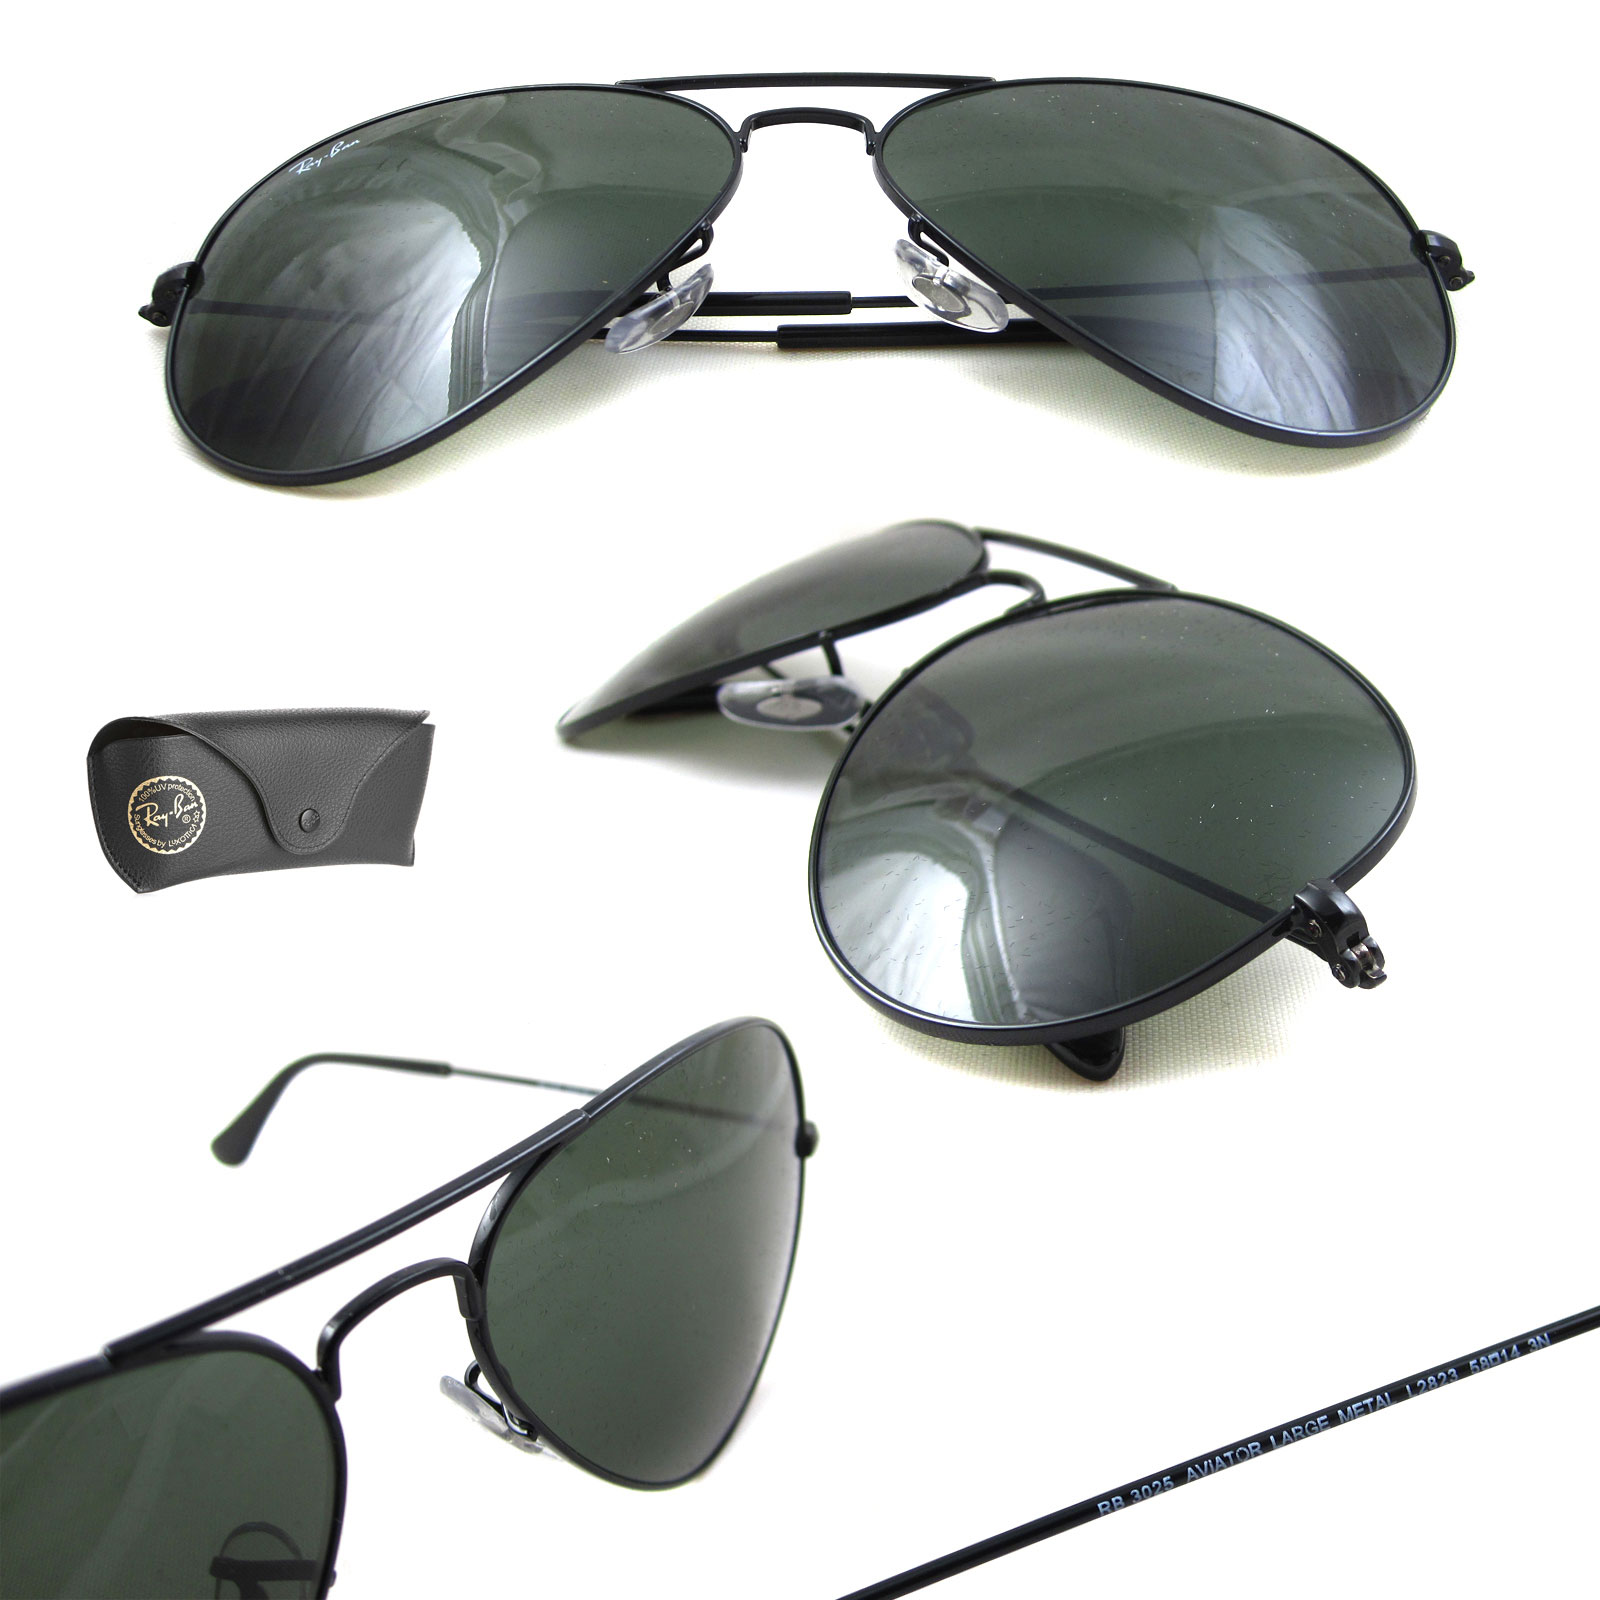 f265b4c372 ... Ray-Ban Sunglasses Aviator 3025 L2823 Black Green G-15 Medium 58mm  Thumbnail 2 ...